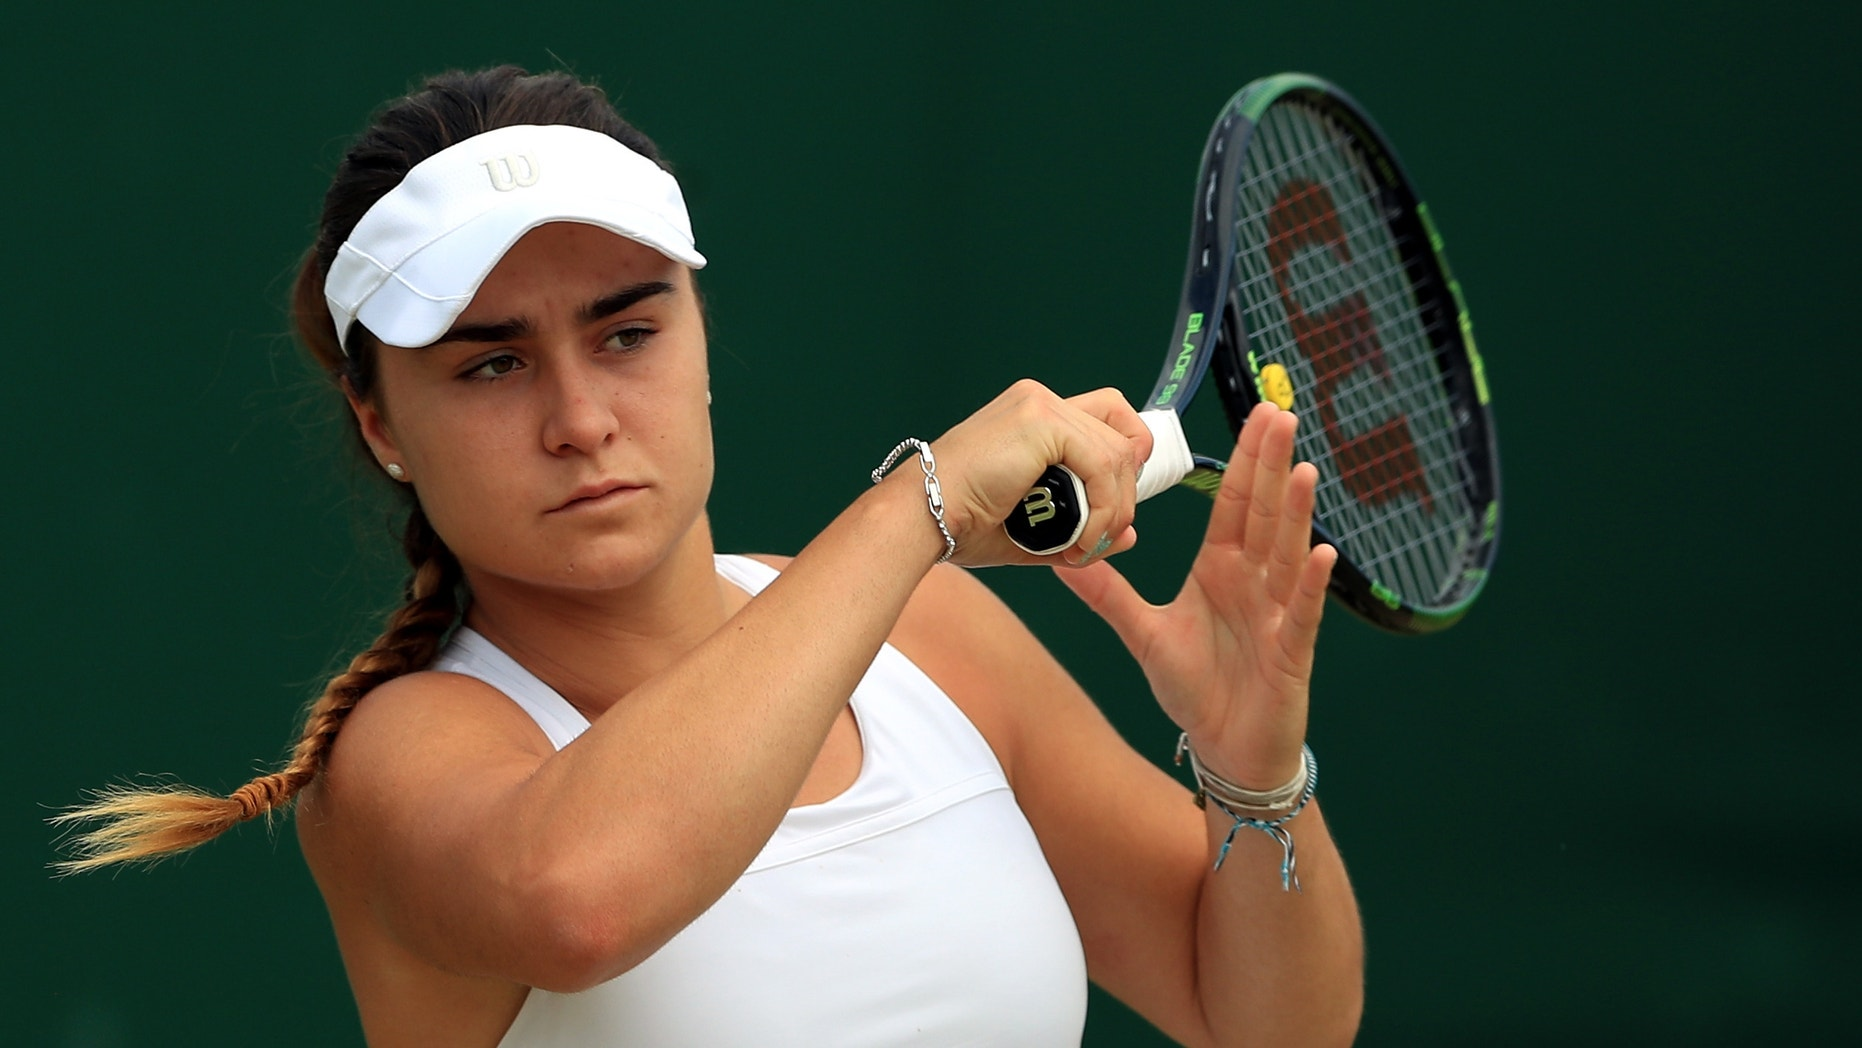 This is a July 2016 file photo of of rising British tennis star Gabriella Taylor in action at Wimbledon London. British police are investigating allegations that Taylor a player at the Wimbledon tennis tournament was poisoned, after she fell ill with a bacterial infection that can be spread through rat urine. Gabriella Taylor was playing in the junior tournament when she became sick.